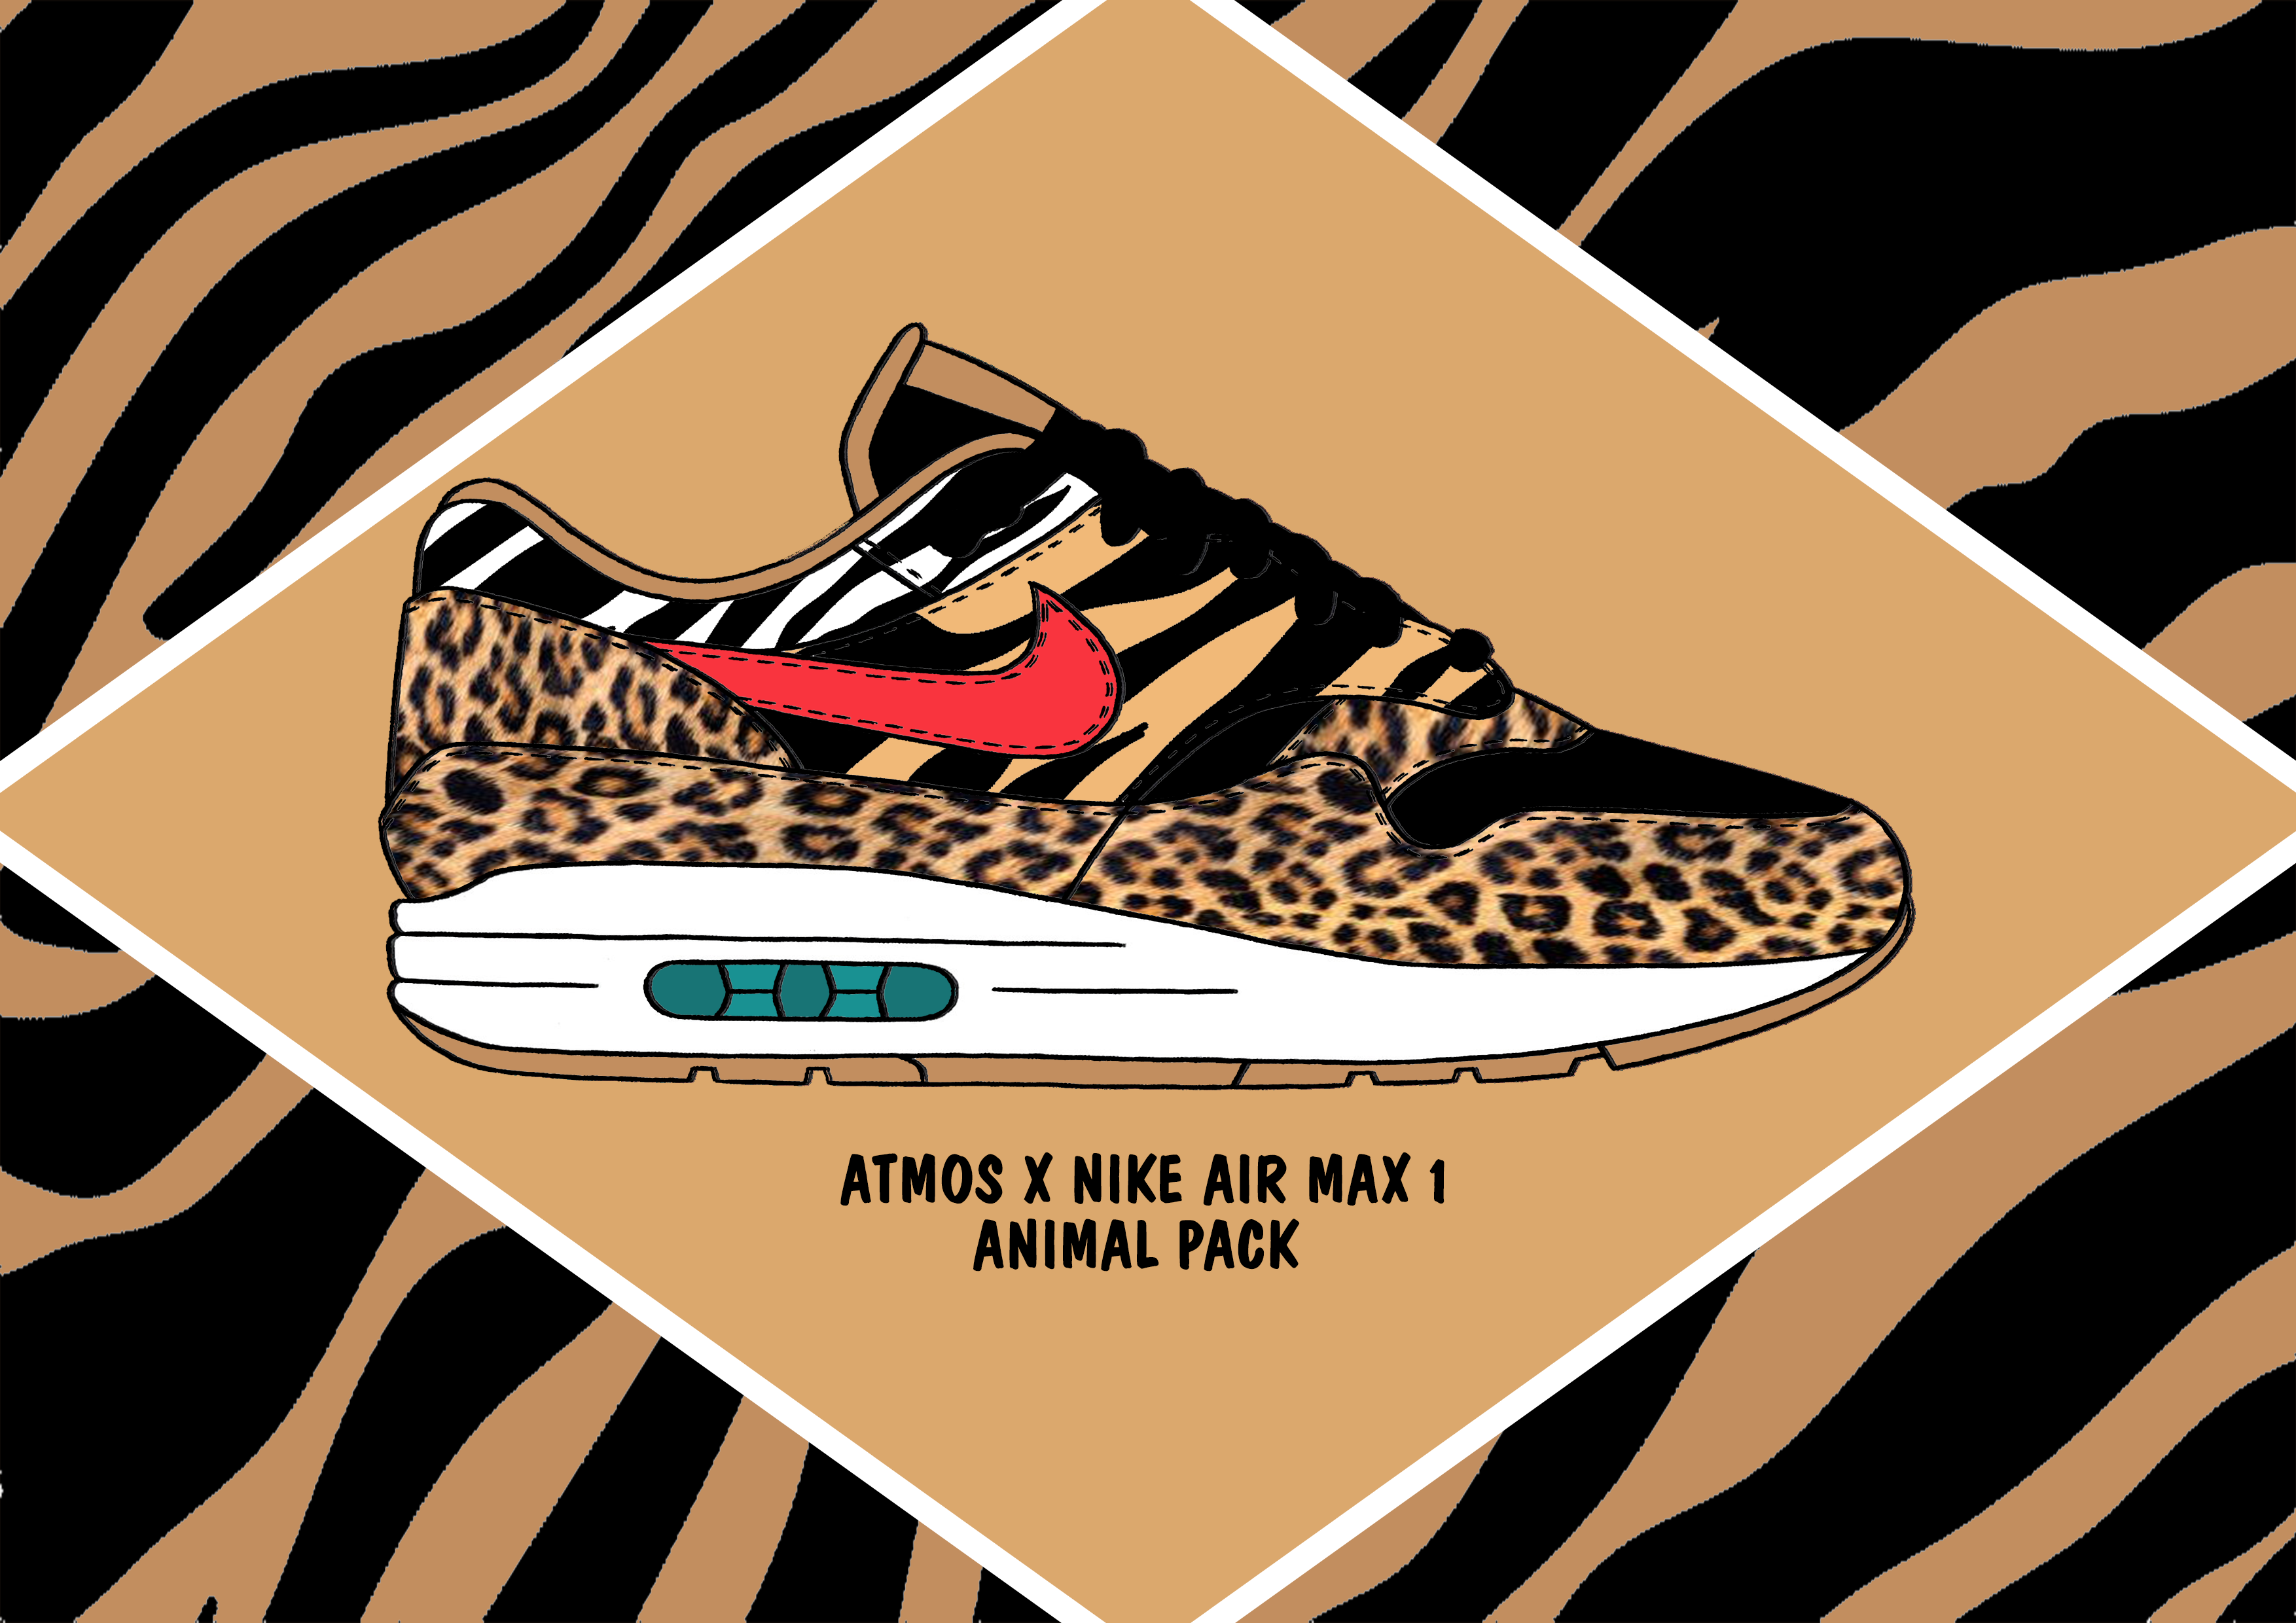 new concept d8968 c00e3 Atmos x Nike Air Max 1 Animal Pack | eleven23design in 2019 | Nike ...